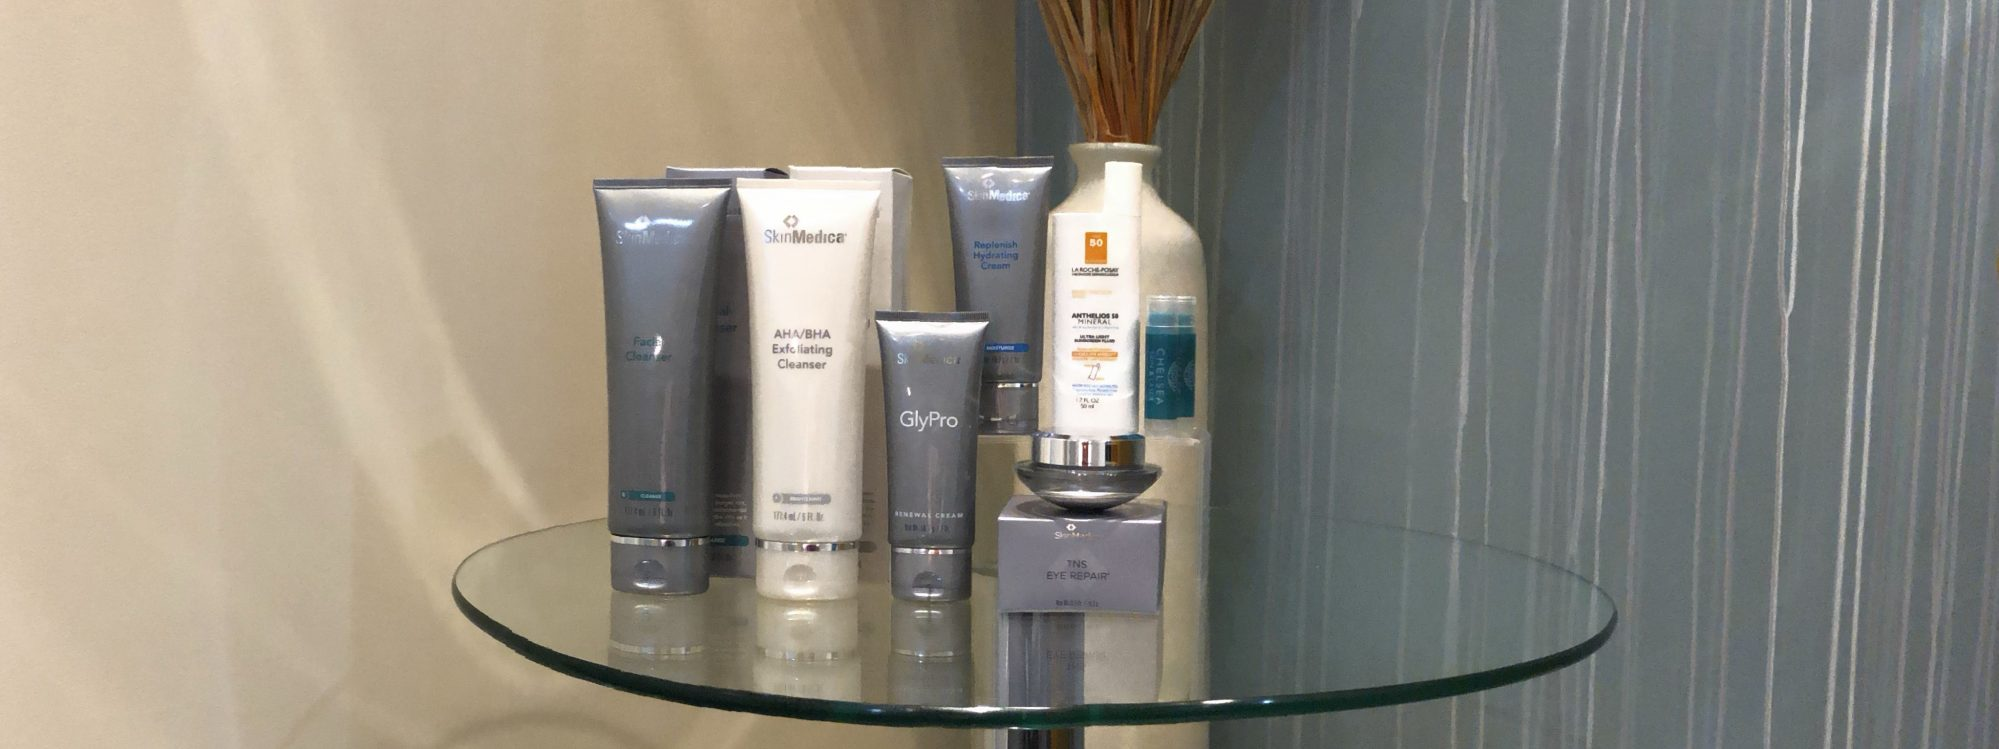 Chelsea Skin and Laser - Products